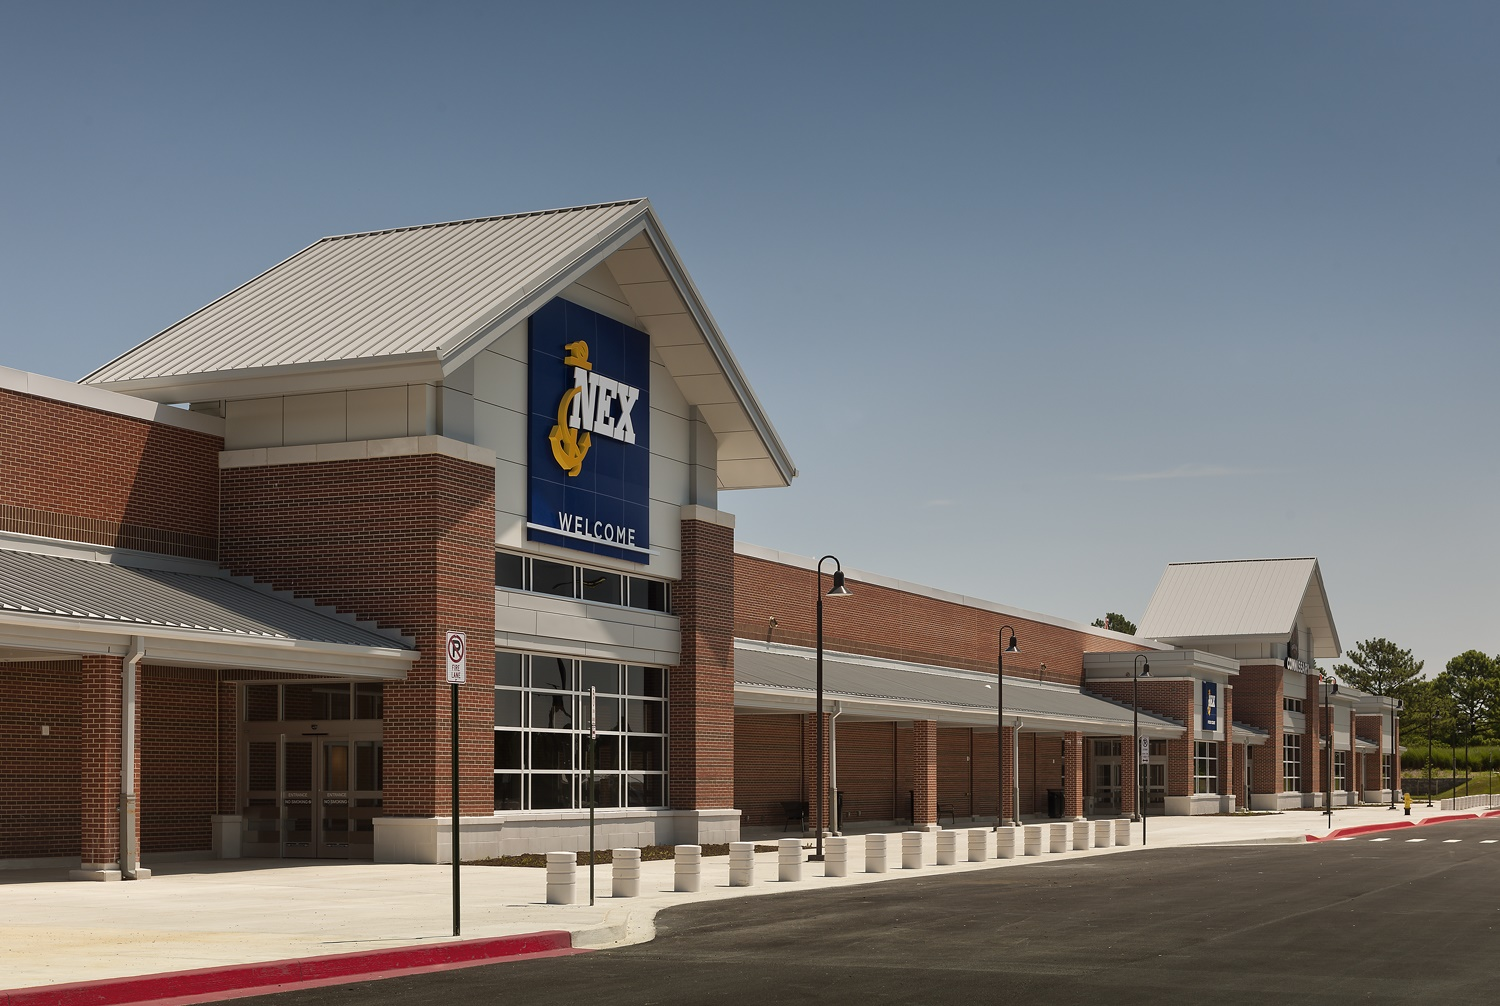 Kbe Building Corp Completes Second Commissary Project